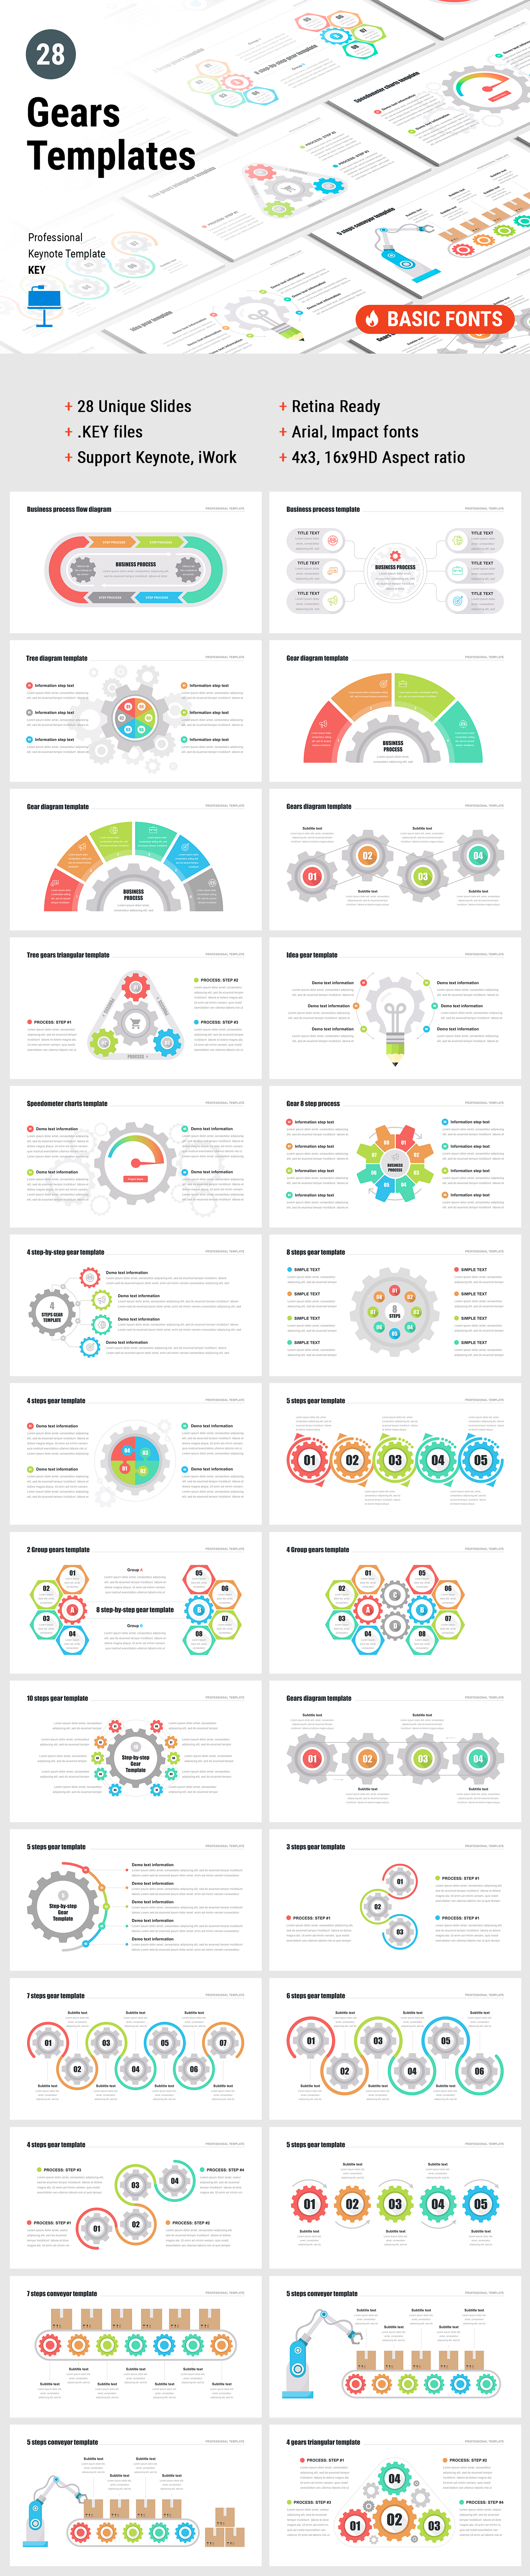 gear-presentation-keynote-template